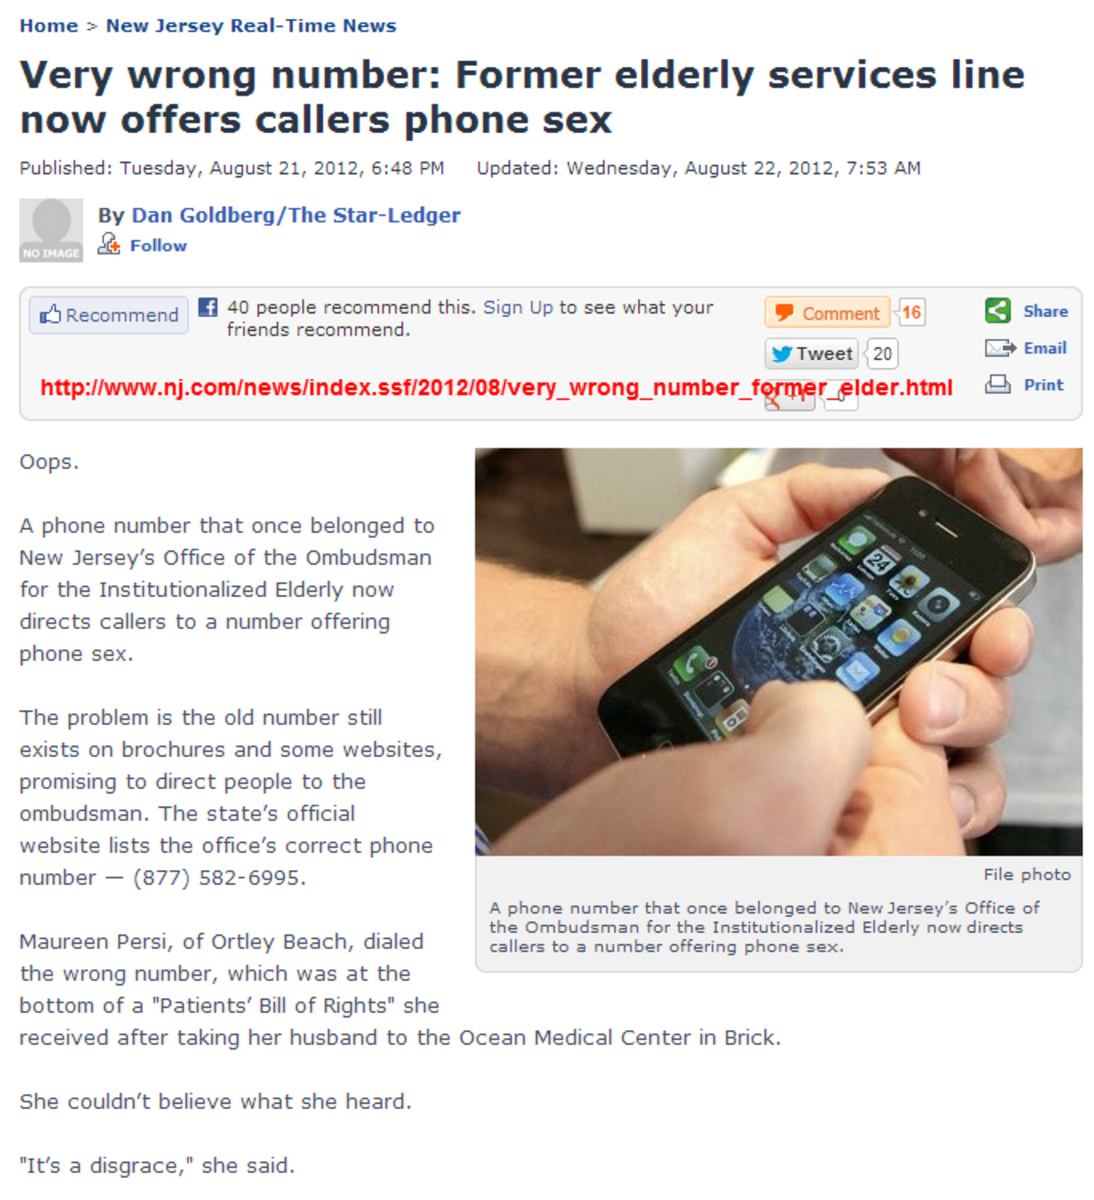 New Jersey Senior Ombudsman number is now a phone sex line. Oops.